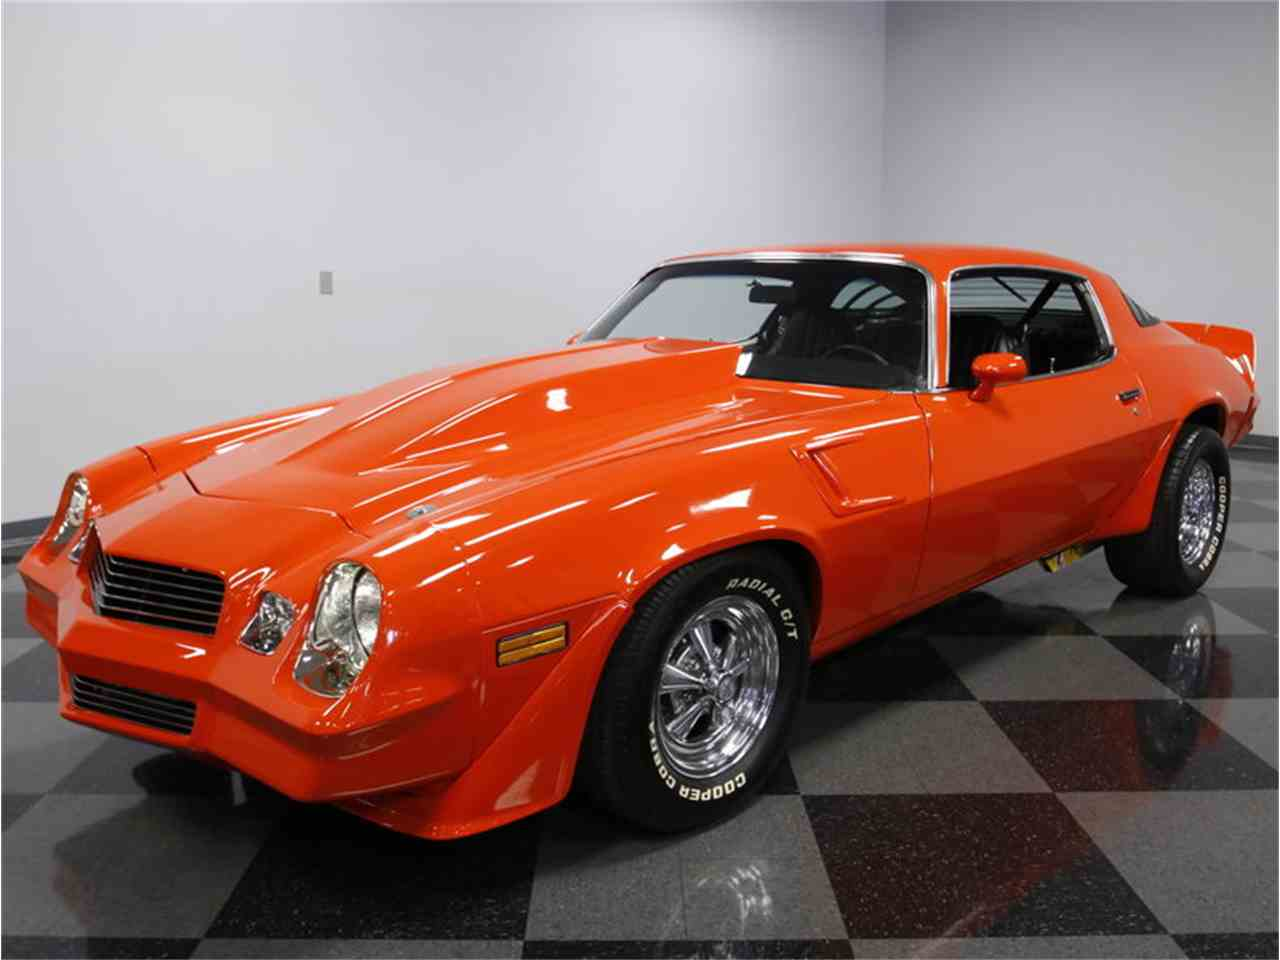 1980 chevrolet camaro z28 for sale cc - Camaro z28 ...